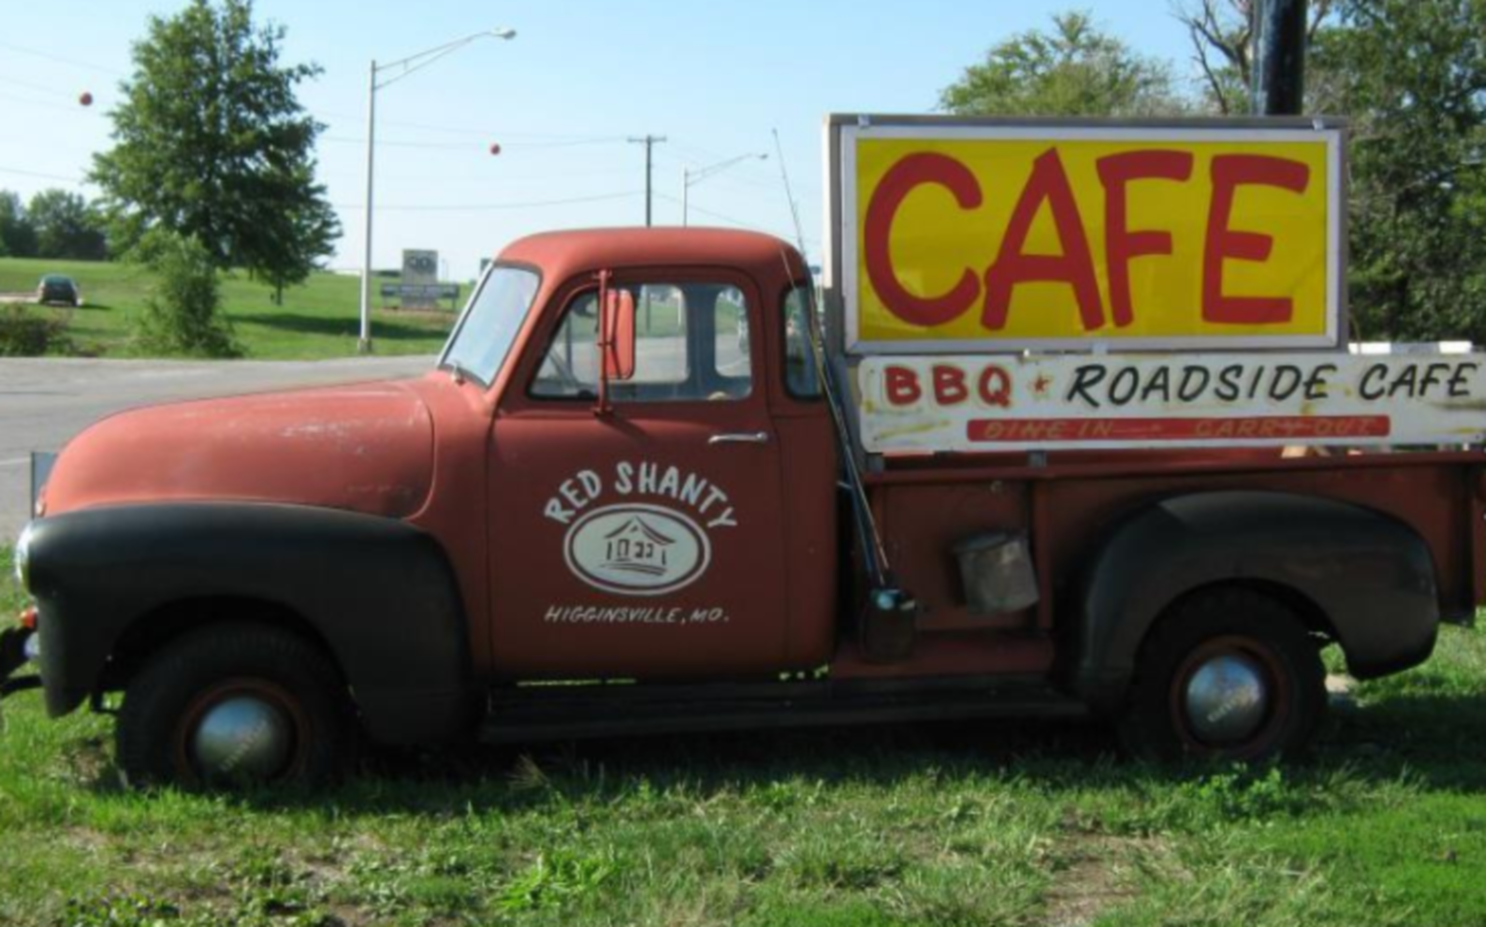 A truck is parked in the grass at Red Shanty BBQ & Roadside Cafe.